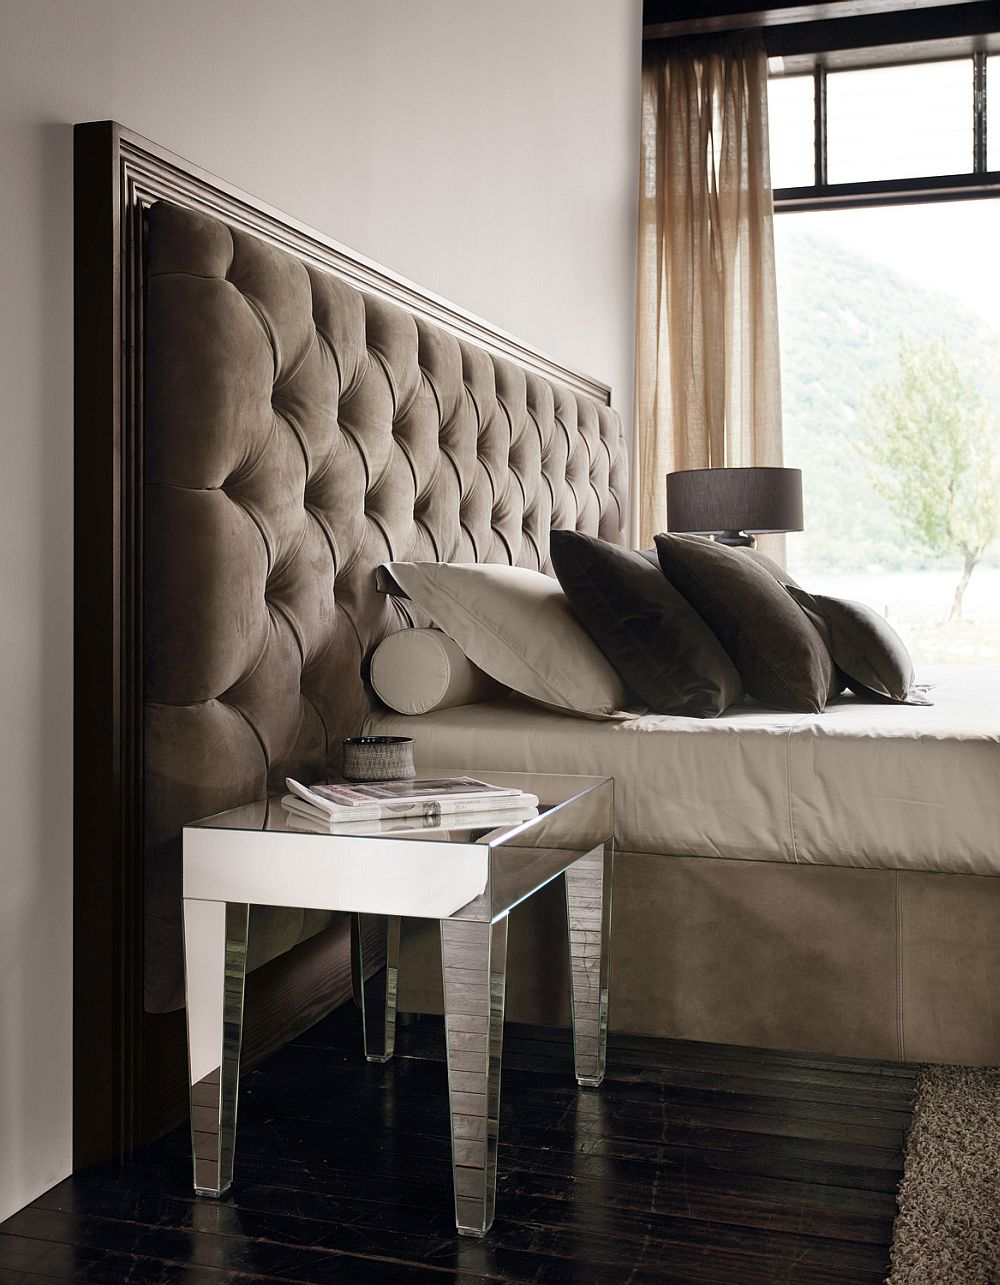 Custom headboard allows you to incorporate various styles and finishes